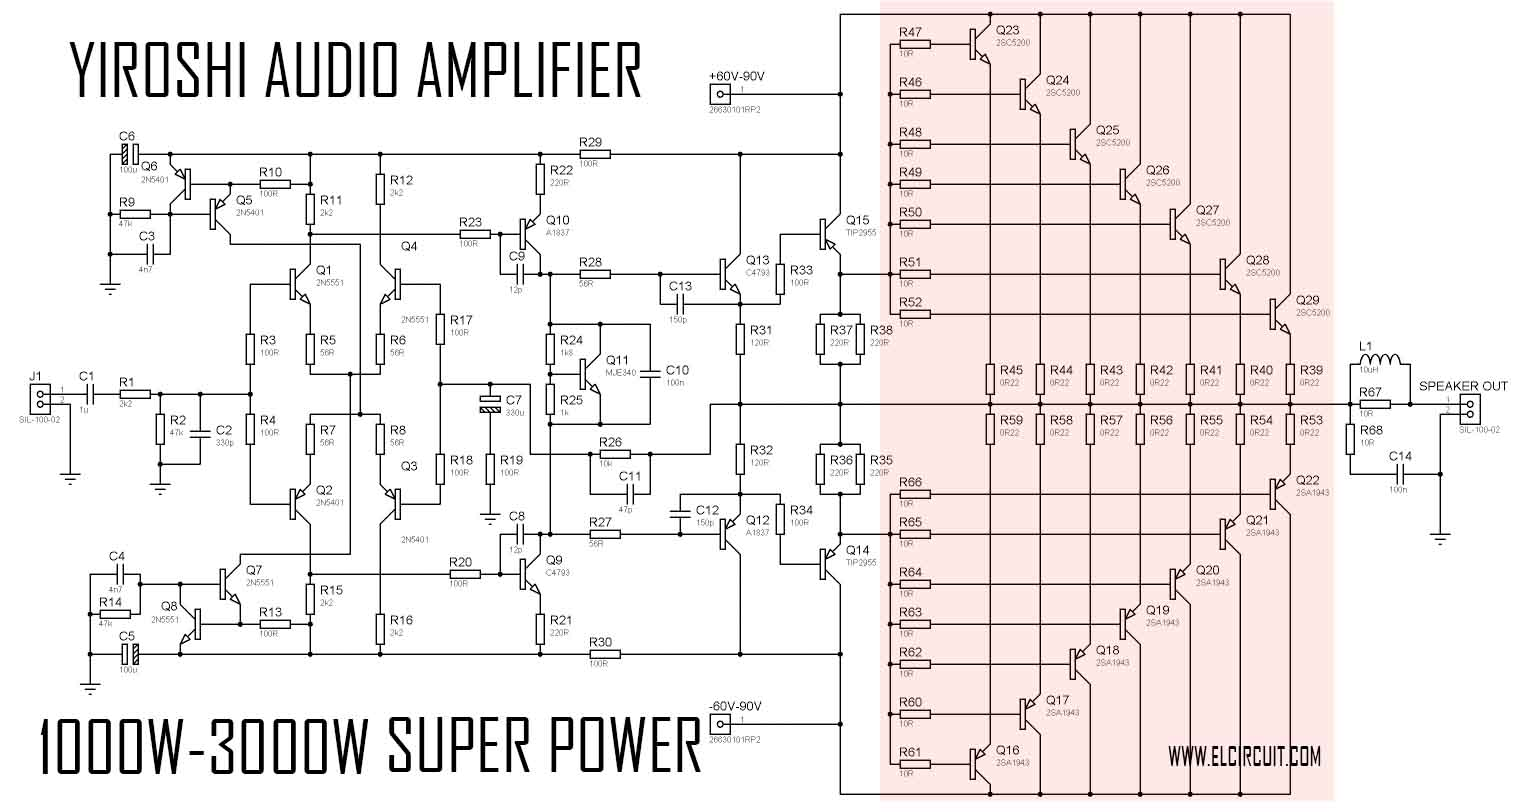 medium resolution of super power amplifier yiroshi audio 1000 watt electronic circuit 1000 watt audio amplifier circuit diagram pdf 1000 watt audio amplifier circuit diagrams